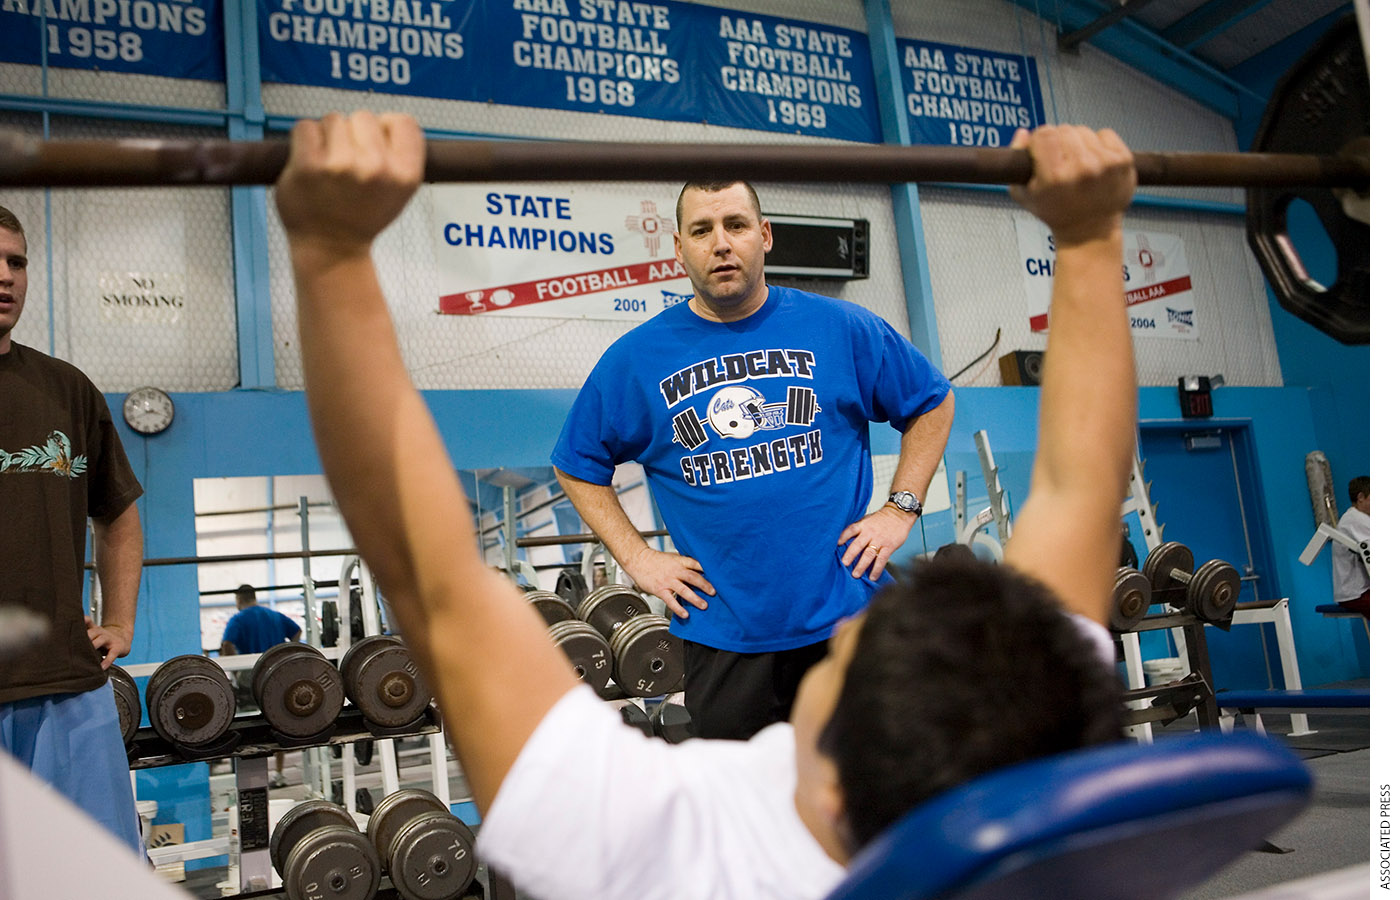 A high-school football player lifts weights while his coach watches.